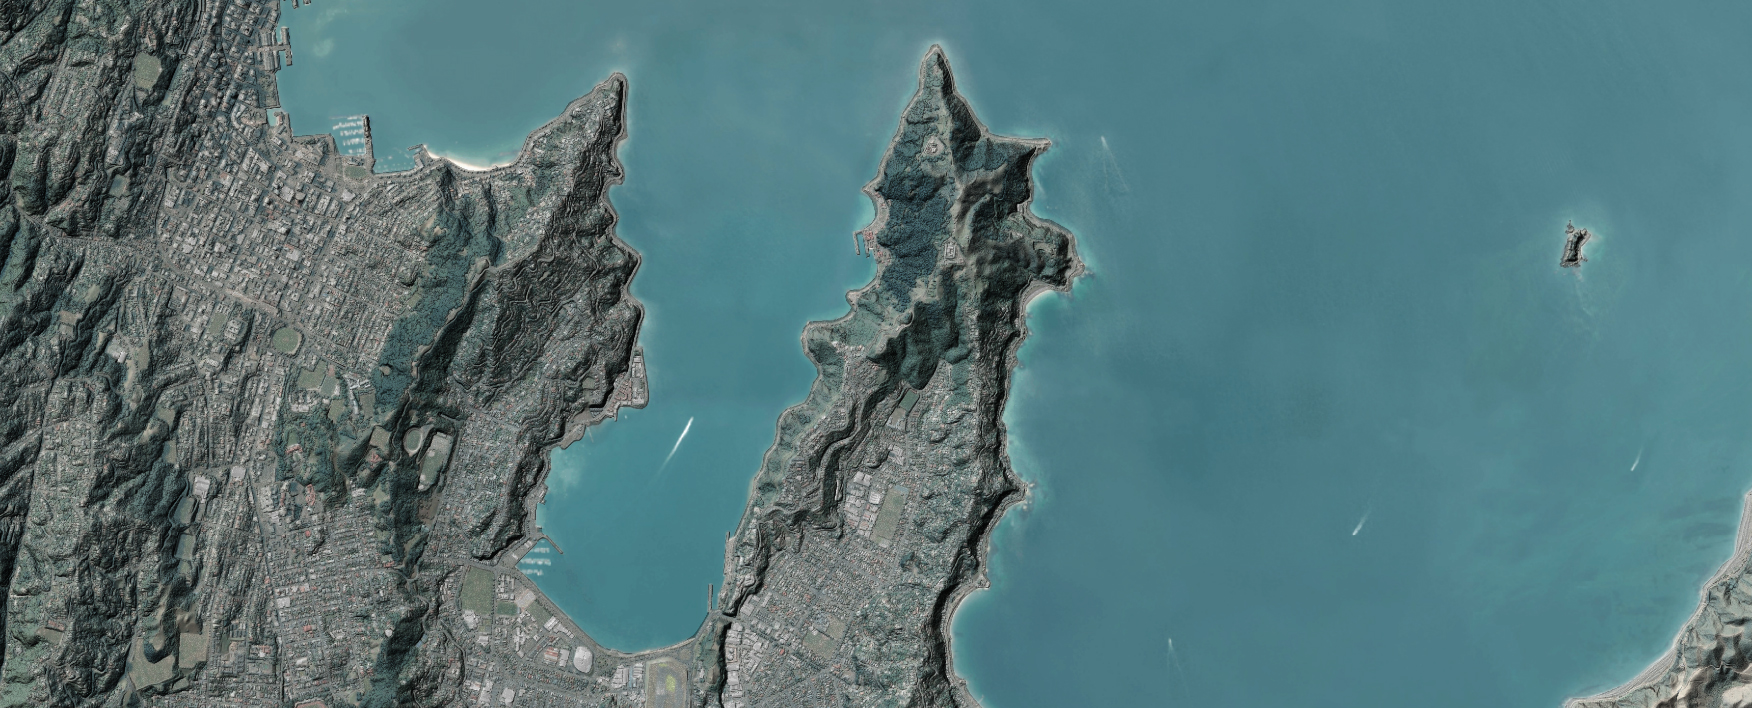 wellyhabour_aerial_withDSMDEMSLOPEHS